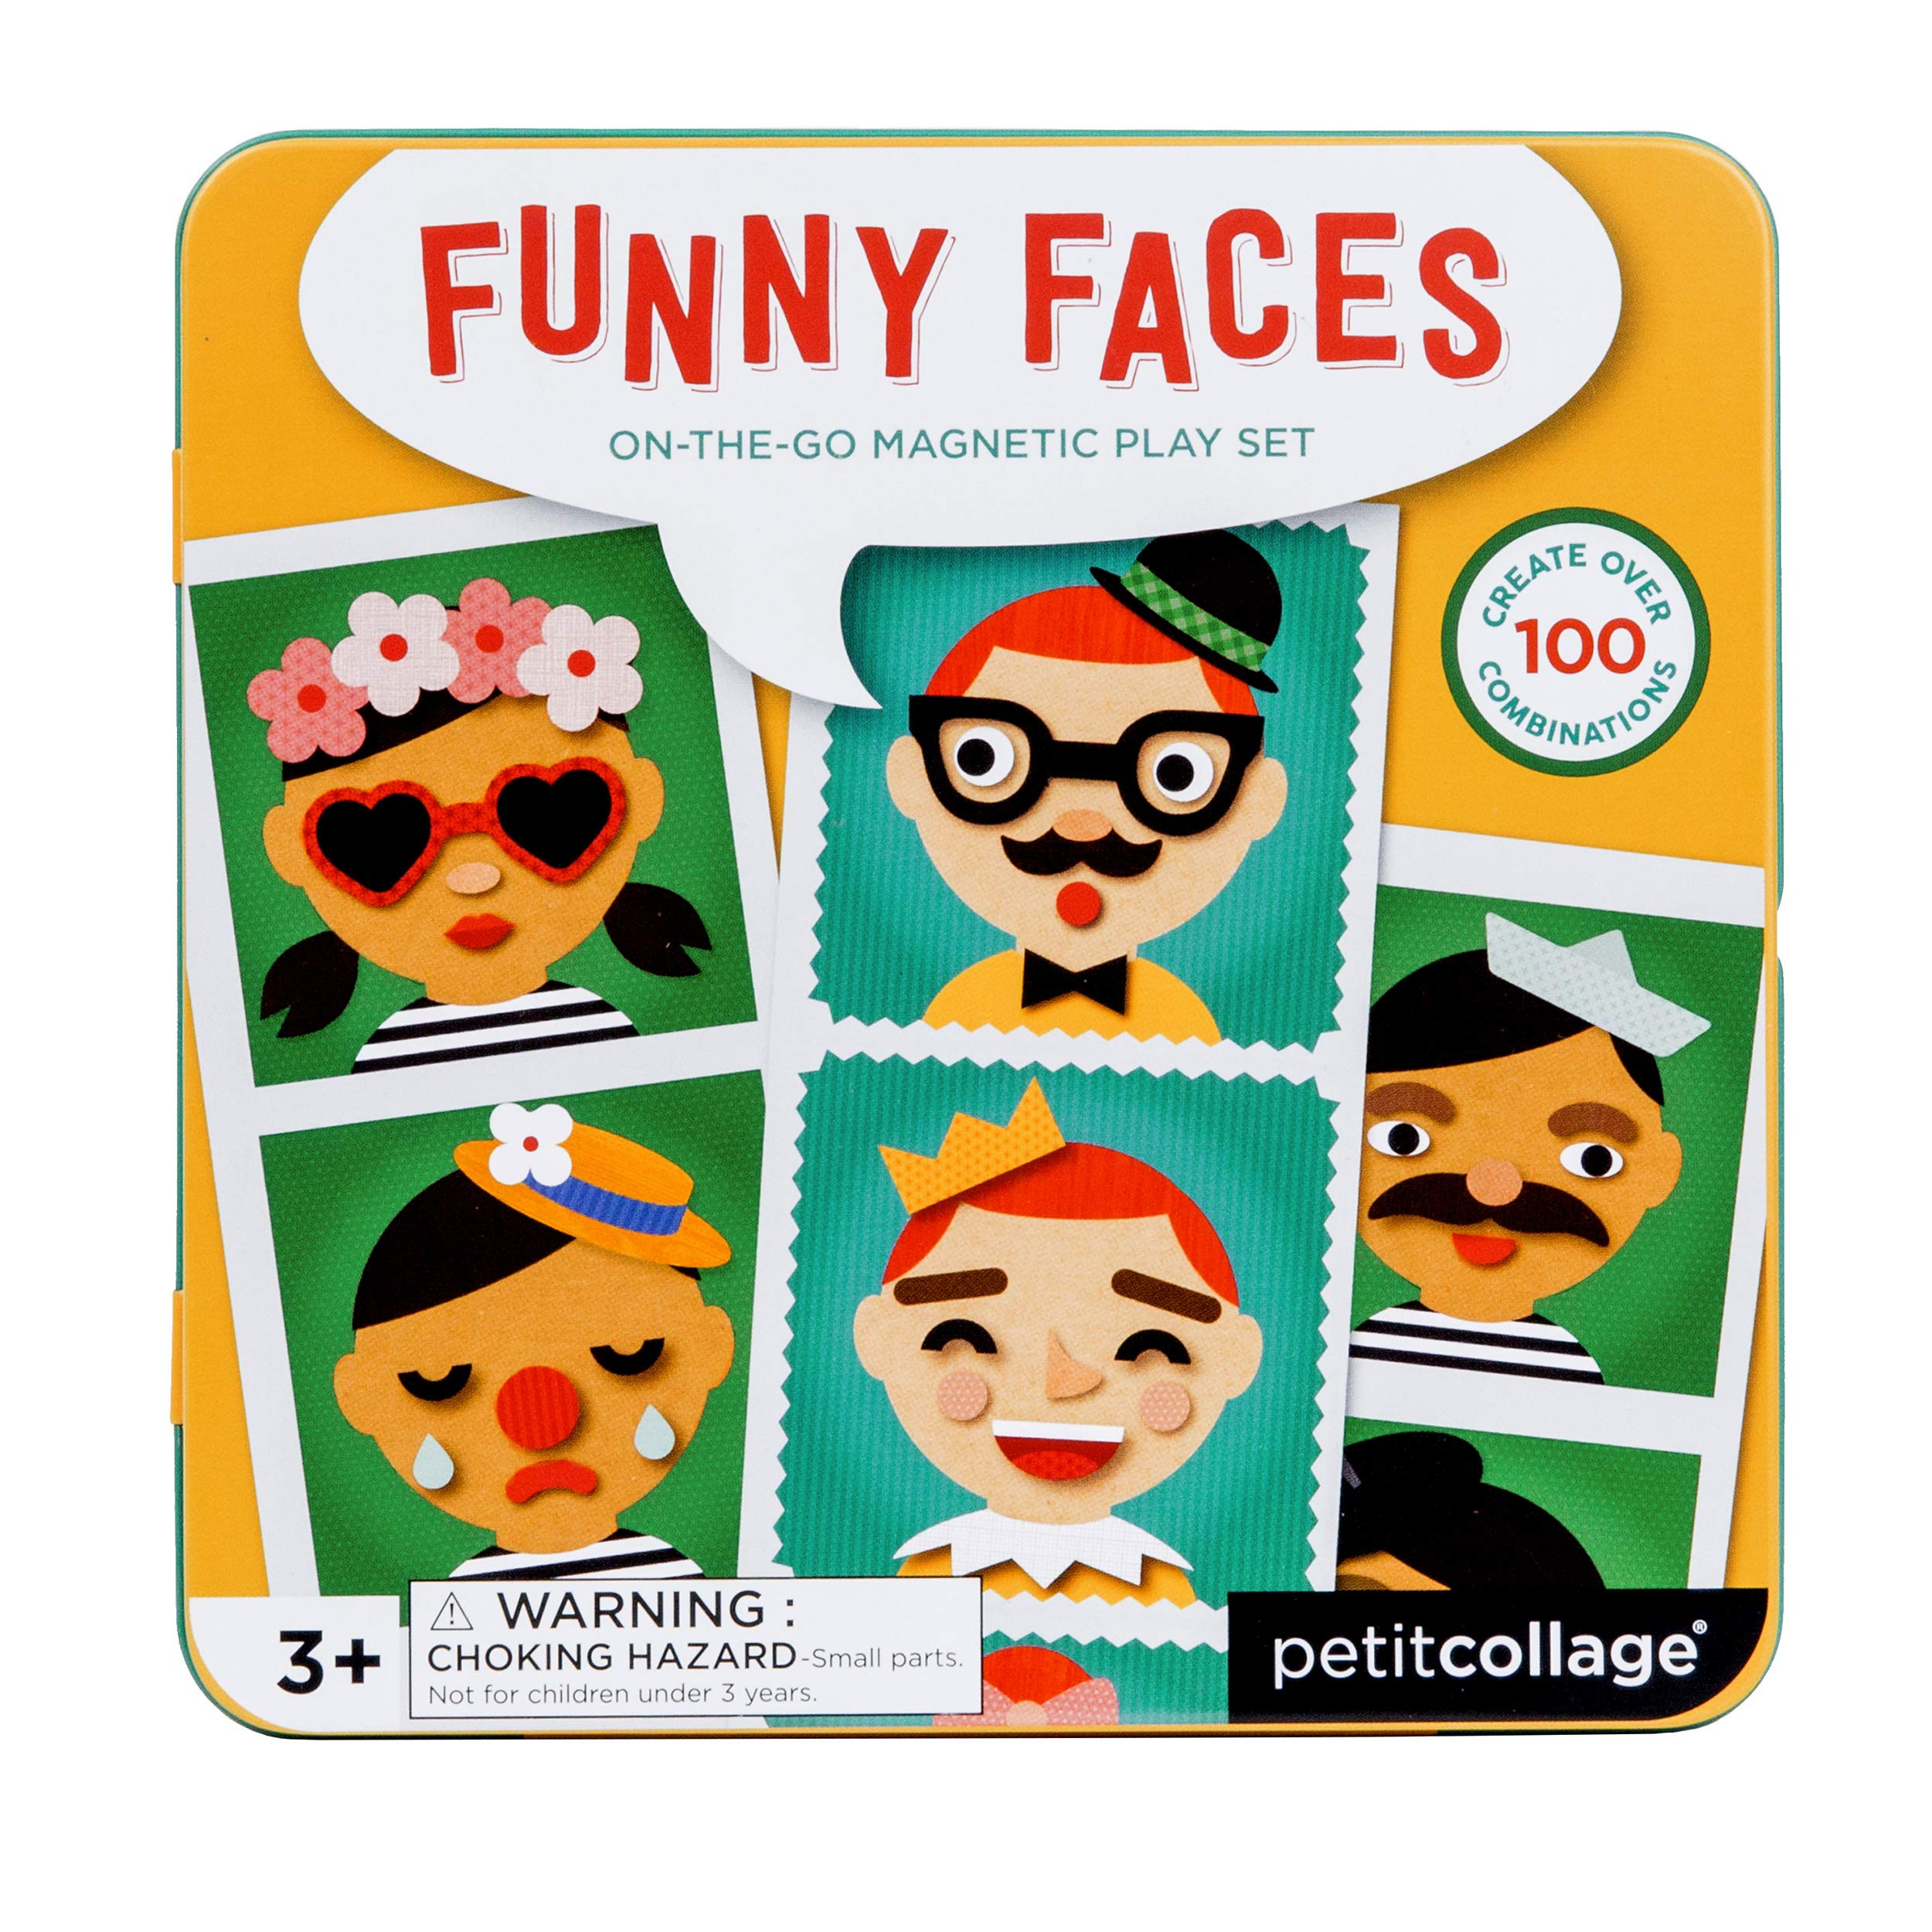 Petit Collage Silly Funny Faces Magnetic On-The-Go Travel Play Set, Multicolor by Petit Collage